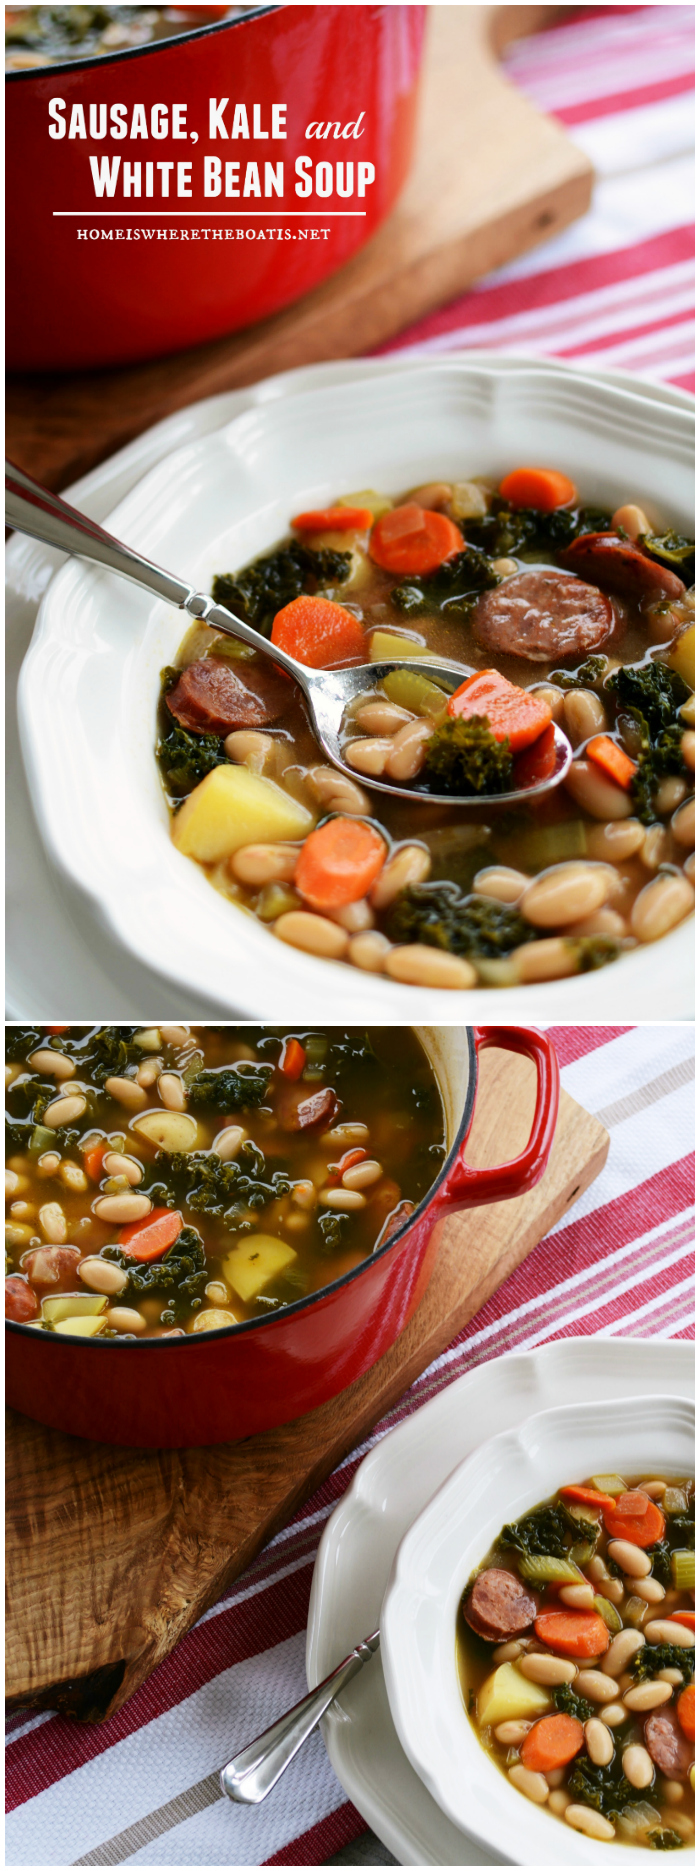 A Hearty Winter Soup: Sausage, Kale and White Bean Soup